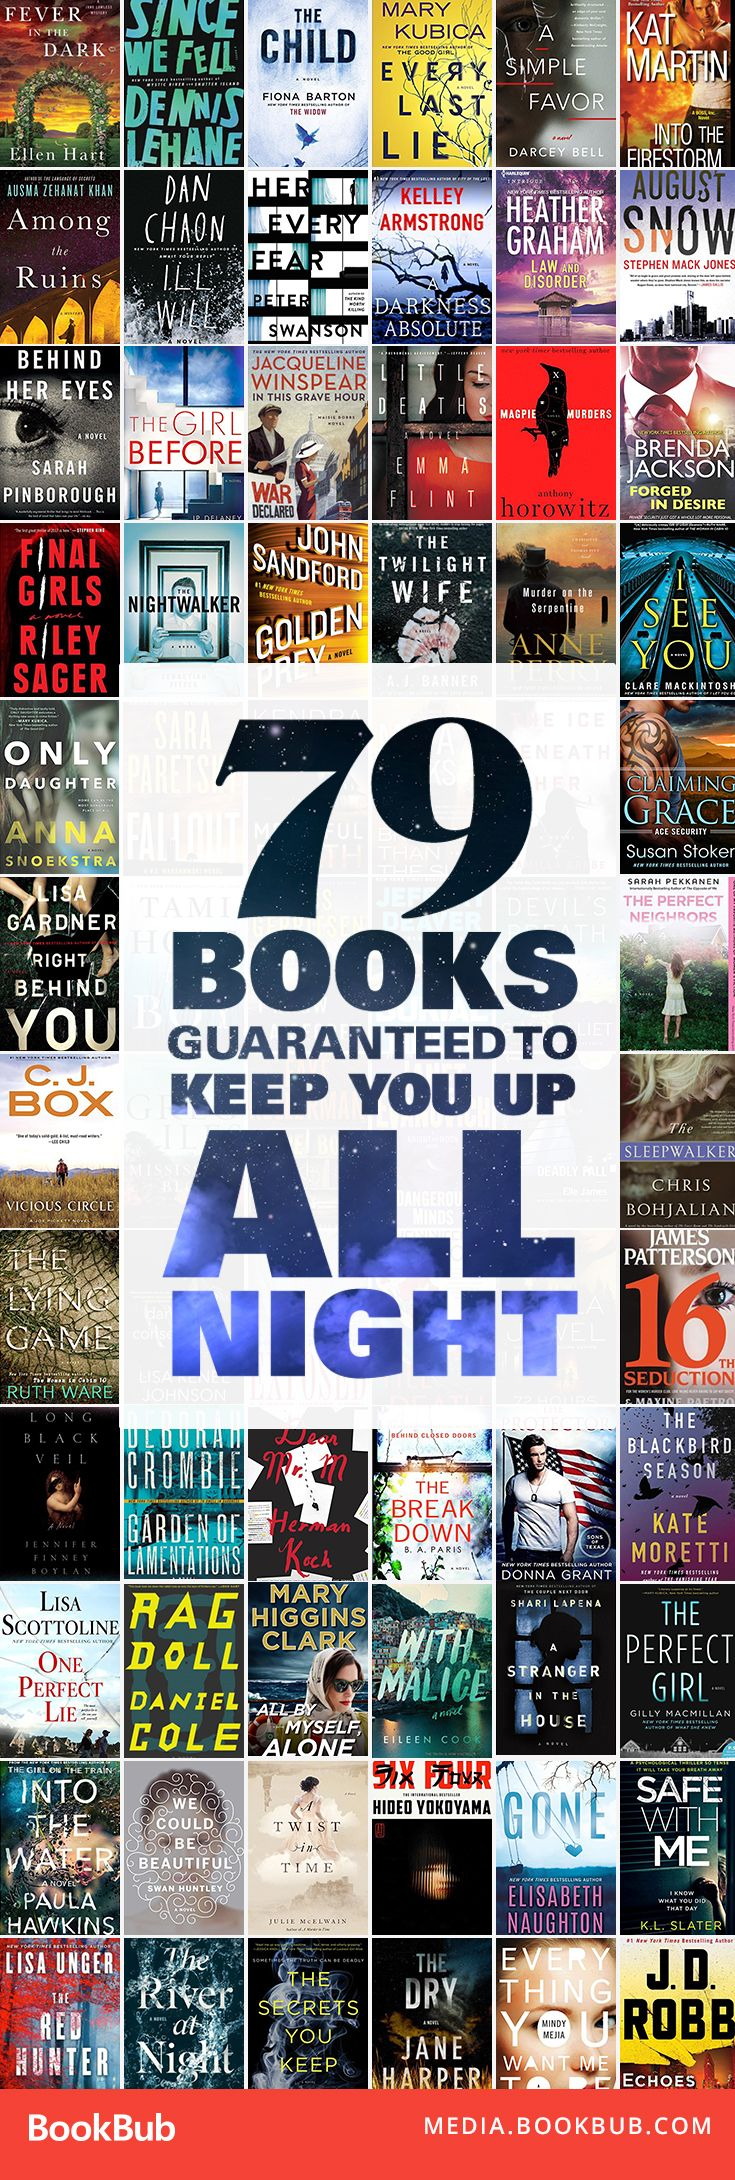 79 books to read that are guaranteed to keep you up all night. Including a list of thriller books, mystery books, psychological thrillers, and romantic suspense books. | Page-turners | Books you can't put down